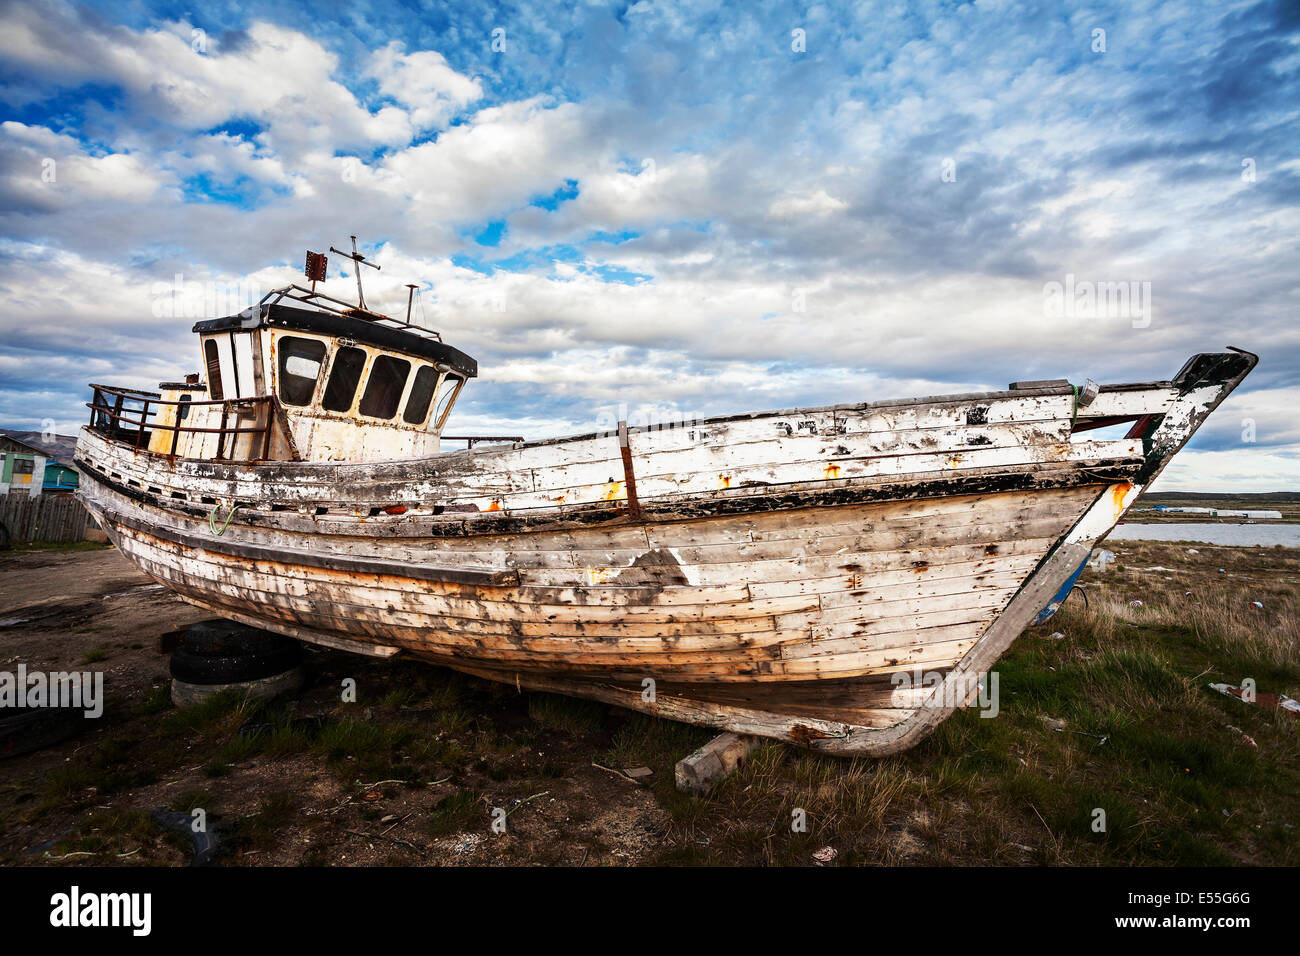 Old boat on abandoned junk yard stock photo royalty free for What to do with an old boat